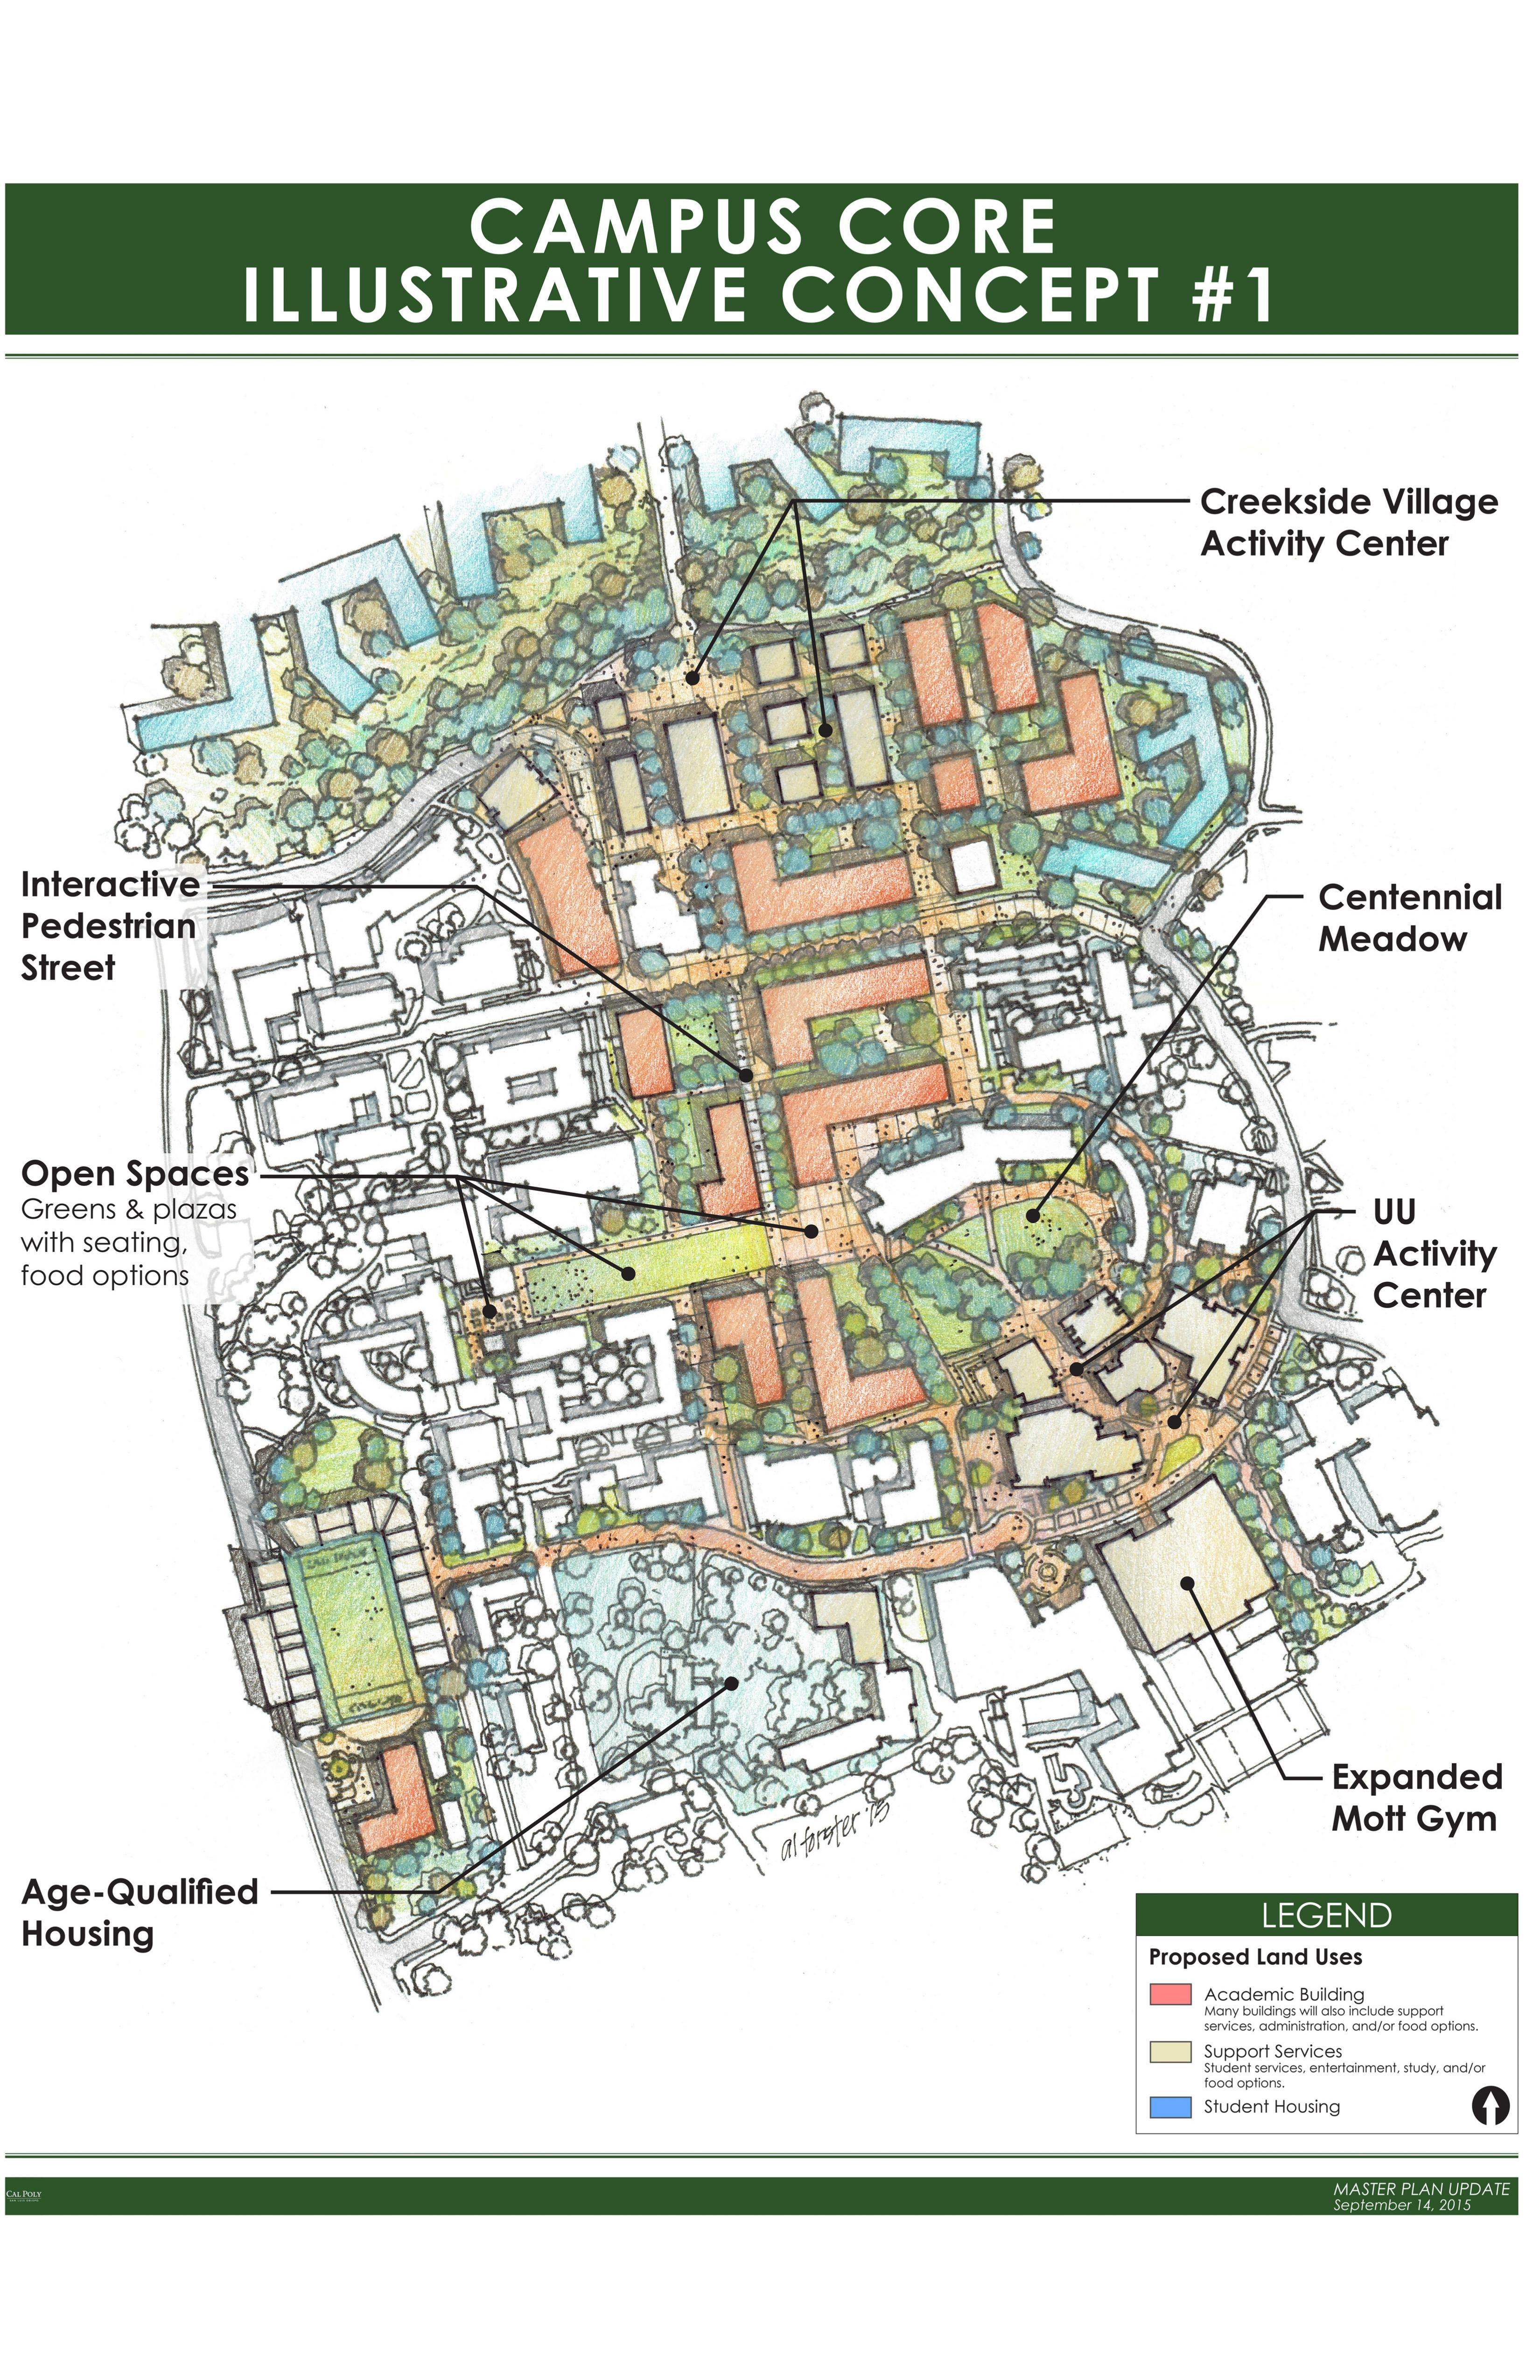 Master Plan | Cal Poly Master Plan on ucsd map, georgia tech map, sonoma state map, california map, georgetown map, duke map, cornell map, houghton college map, usc map, cal state northridge map, camp slo map, uc riverside map, cal state pomona map, sacramento state map, poly canyon trail map, valparaiso map, uc irvine map, loyola marymount map, cal state san luis obispo, weber state map,